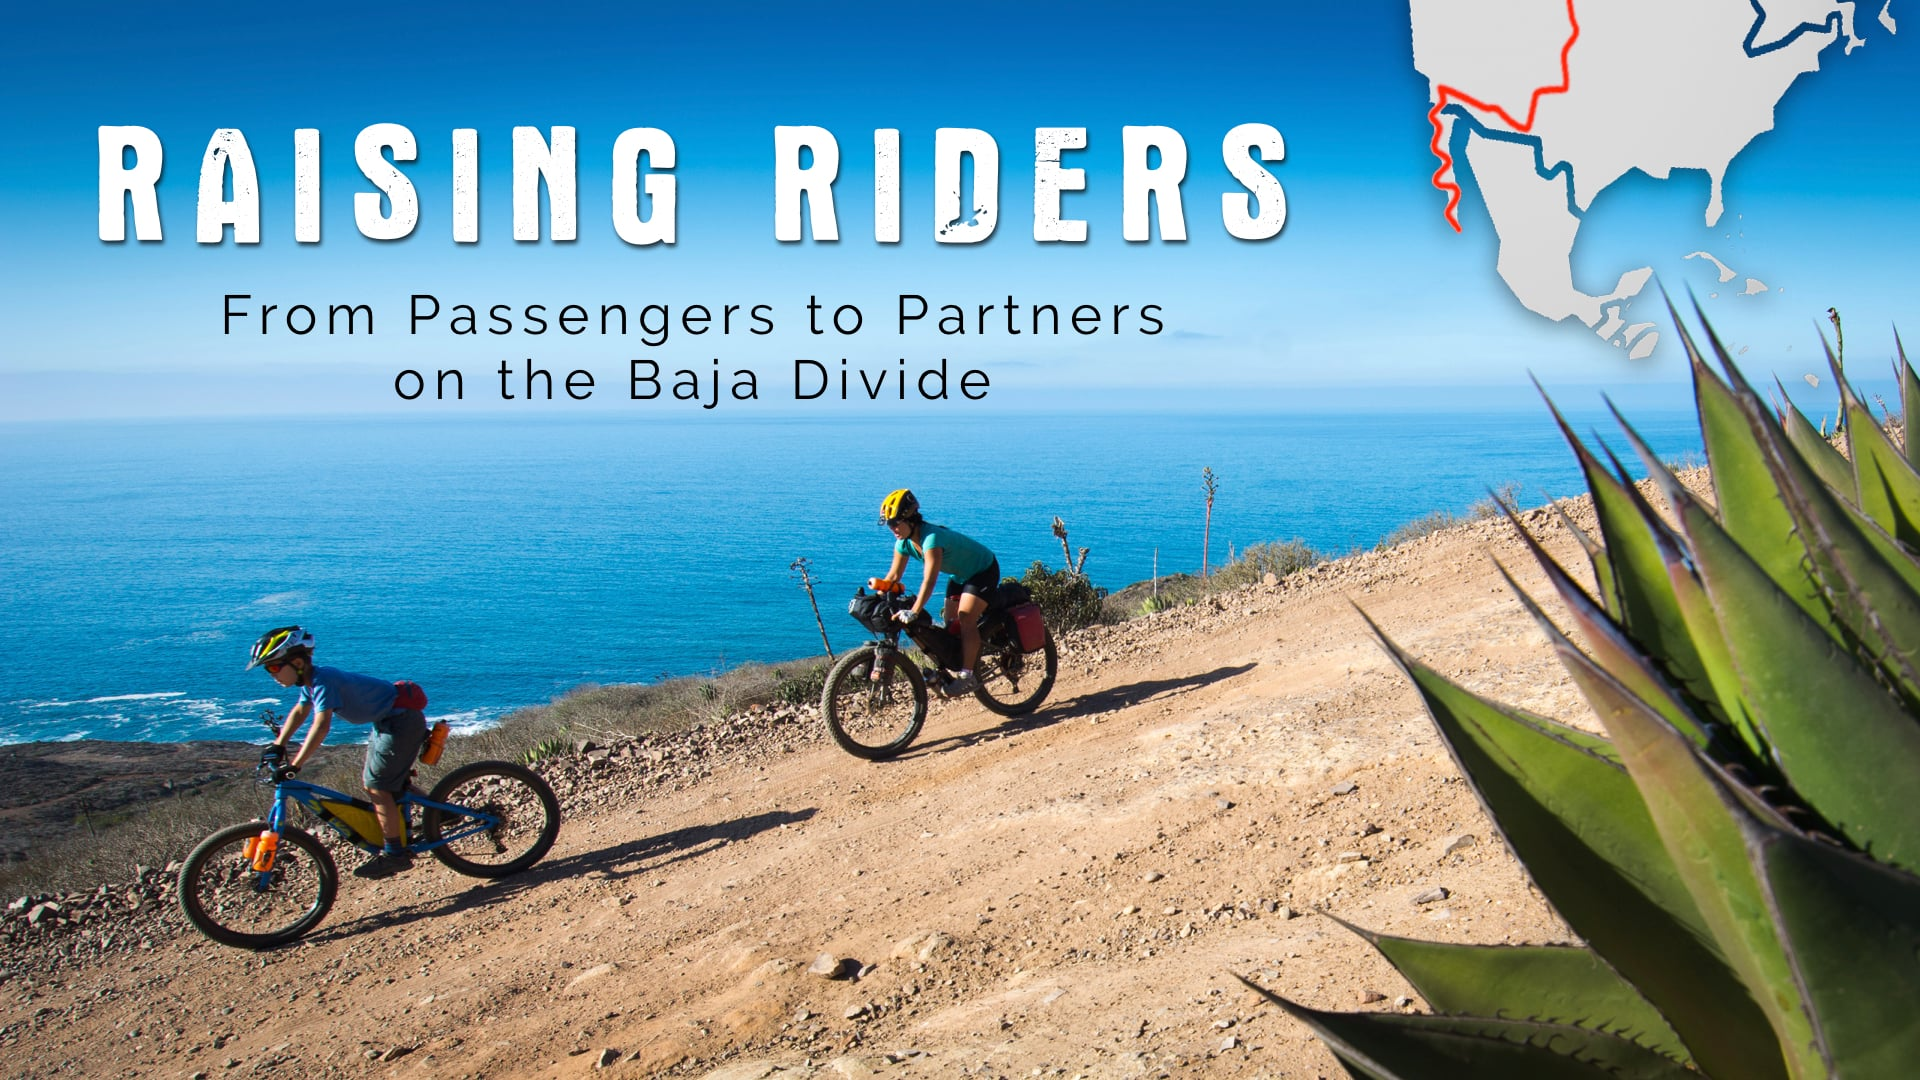 Raising Riders: From Passengers to Partners on the Baja Divide